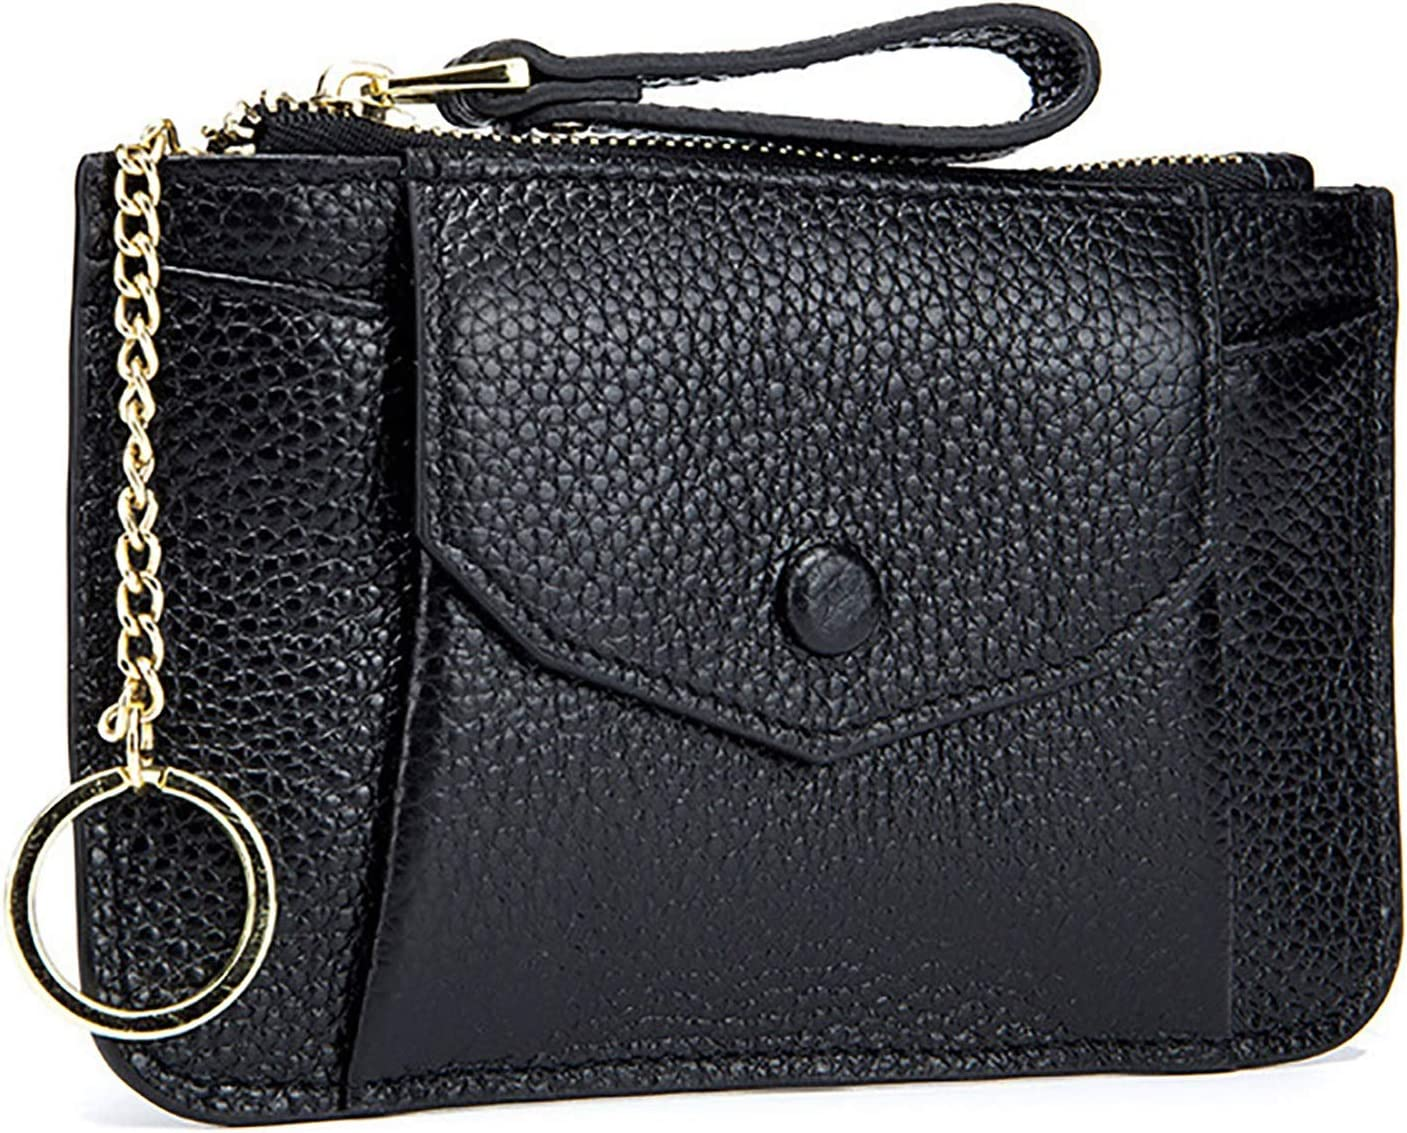 LIUMANG Coin Purse Women Leather Change Wallet Coin Pouch Key Bag Small Pocket Wallets with Key Chain Coin Purse Mini Coin Purse (Color : Black, Size : 15x9.5x1cm)